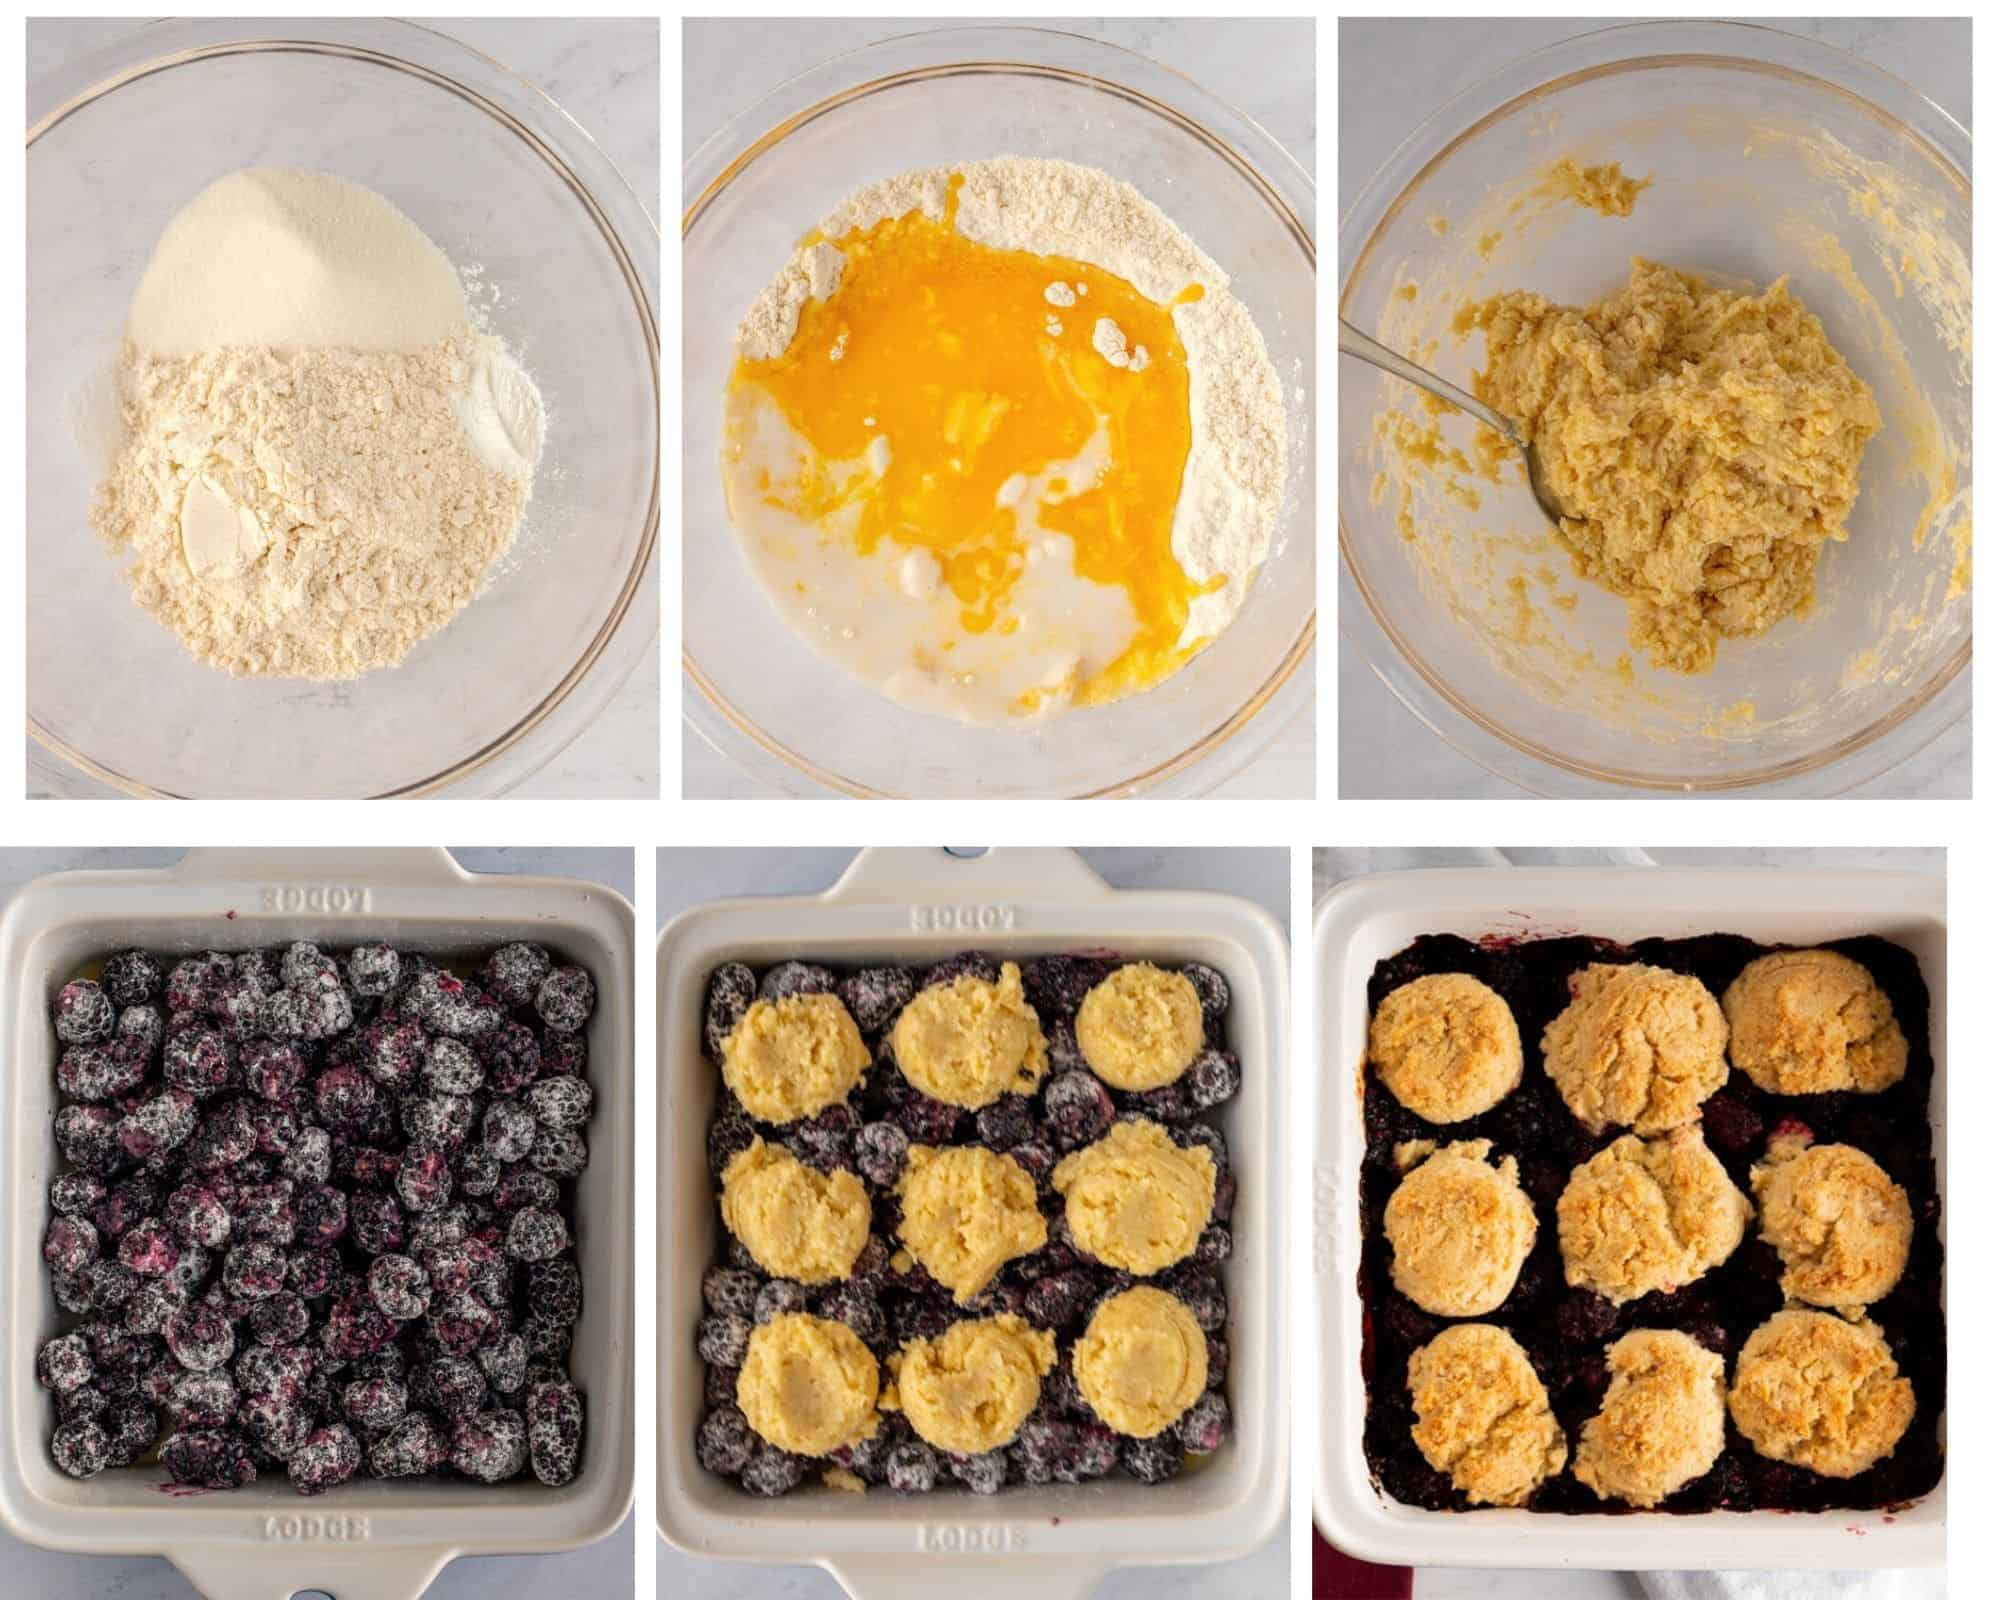 Photos showing steps to make vegan blackberry cobbler